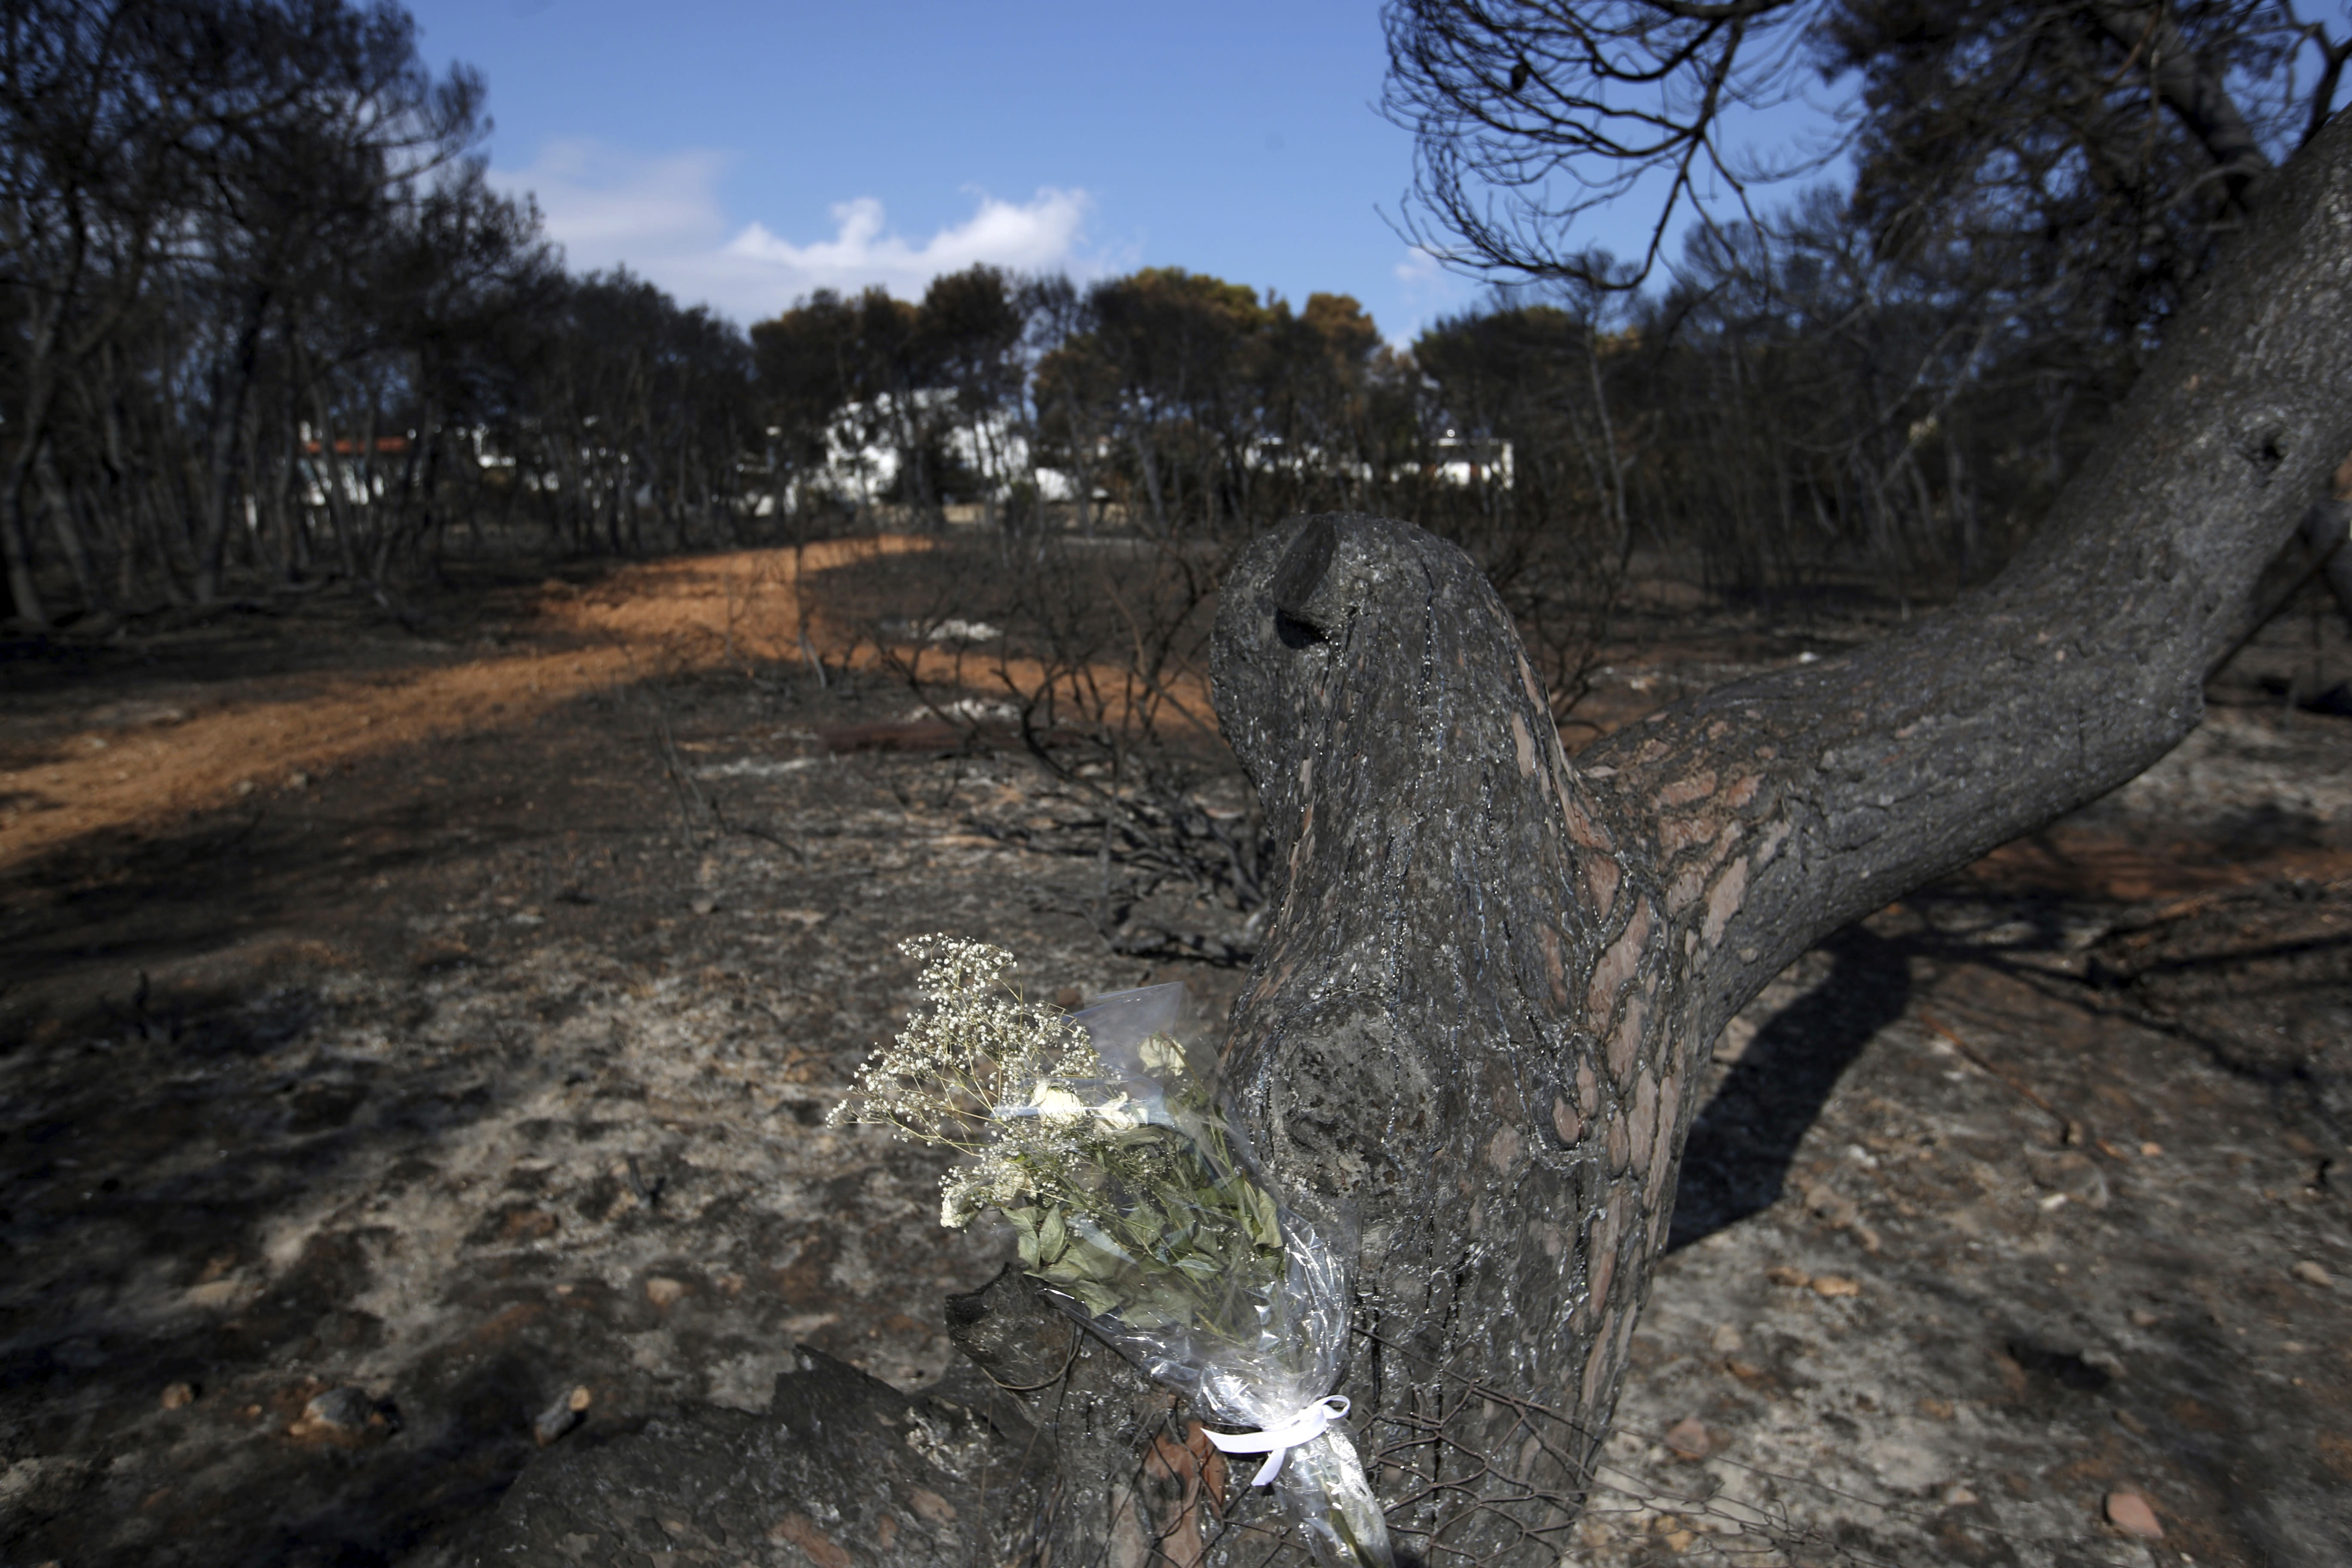 Flowers are placed on a burnt tree in Mati, east of Athens, Wednesday, Aug. 1, 2018, ten days after the wildfire. The bodies of 76 people killed by Greece's deadliest wildfire in decades have been identified, authorities said Tuesday, as forensic experts kept working to identify more remains recovered from the charred resort area. (AP Photo/Thanassis Stavrakis)